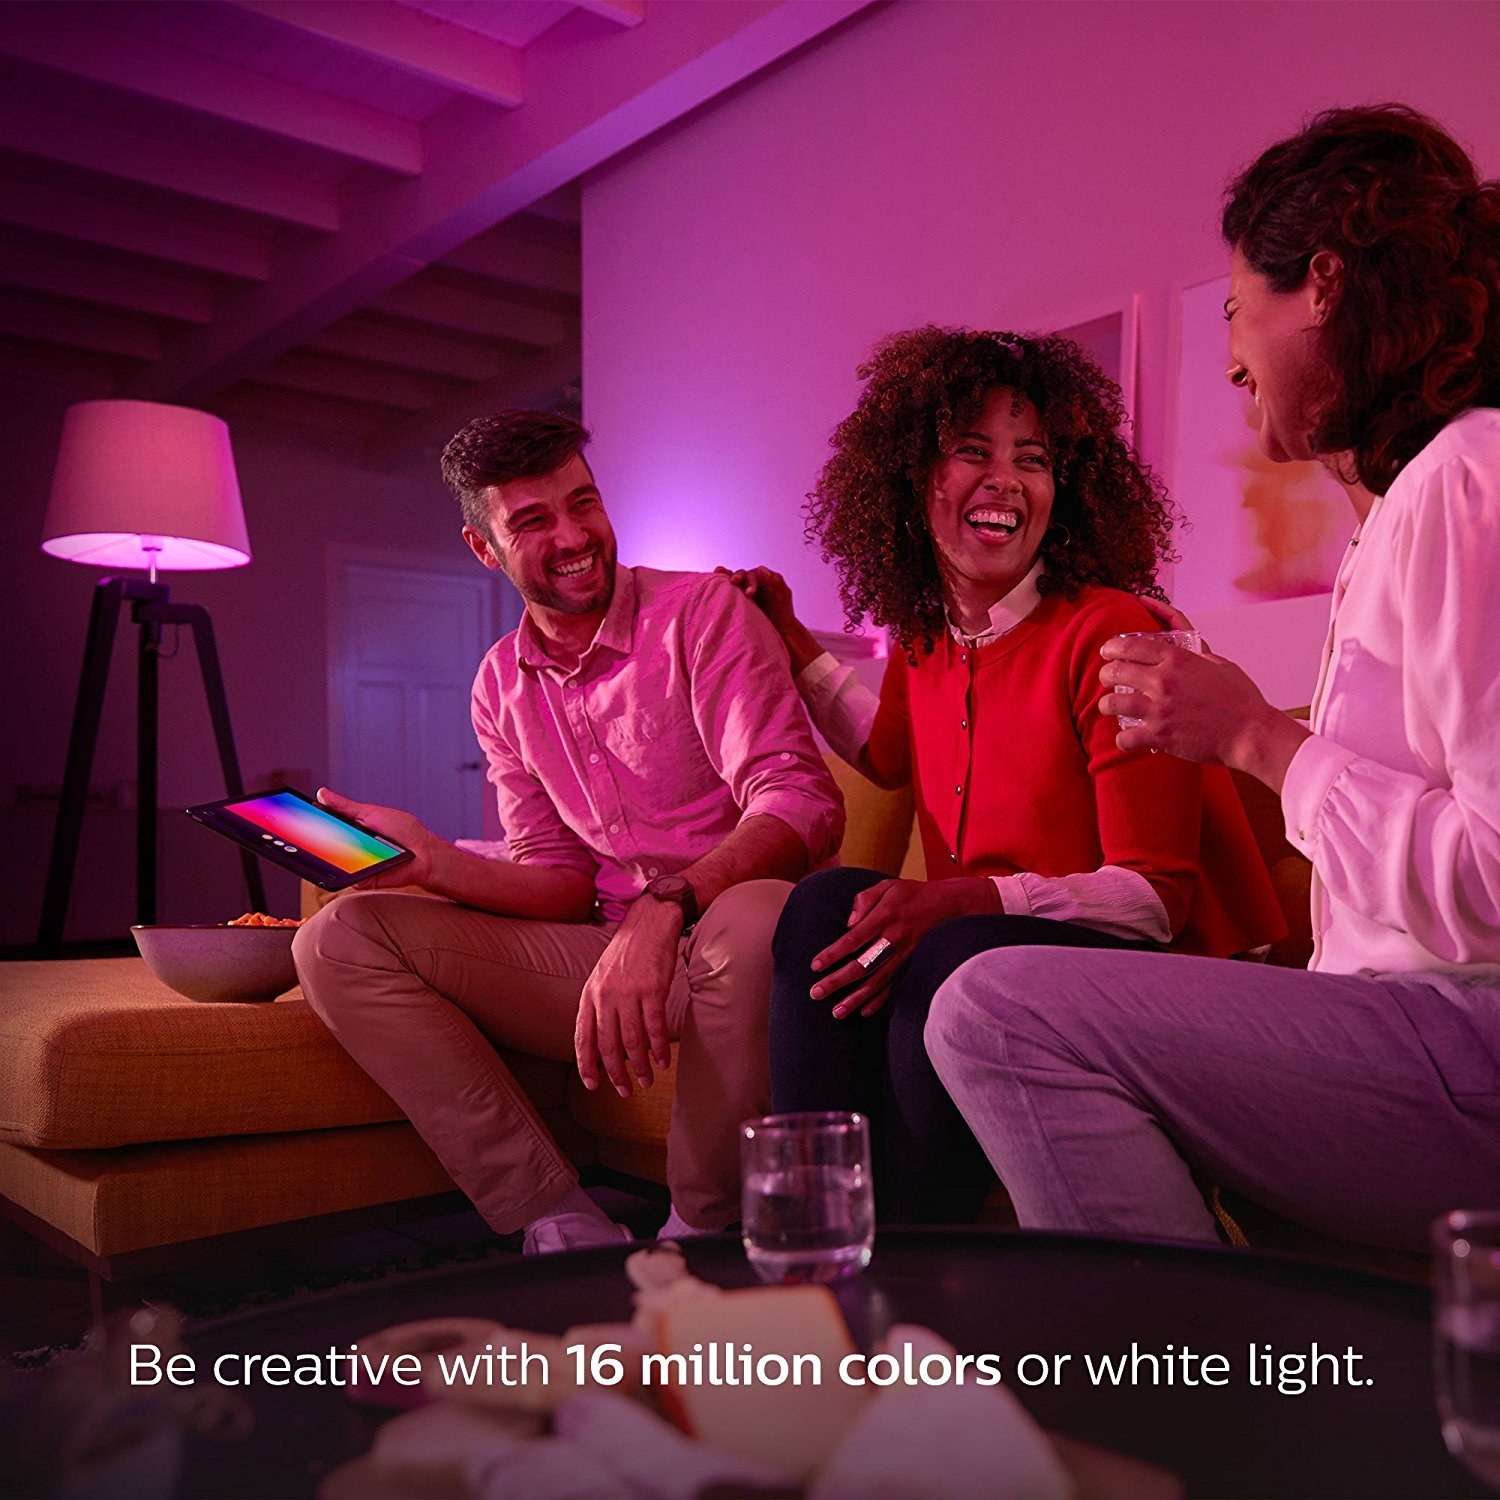 Philips Hue 464479 60W Equivalent White and Color Ambiance A19 Starter Kit, 3rd Generation, Works with Amazon Alexa by Philips (Image #6)